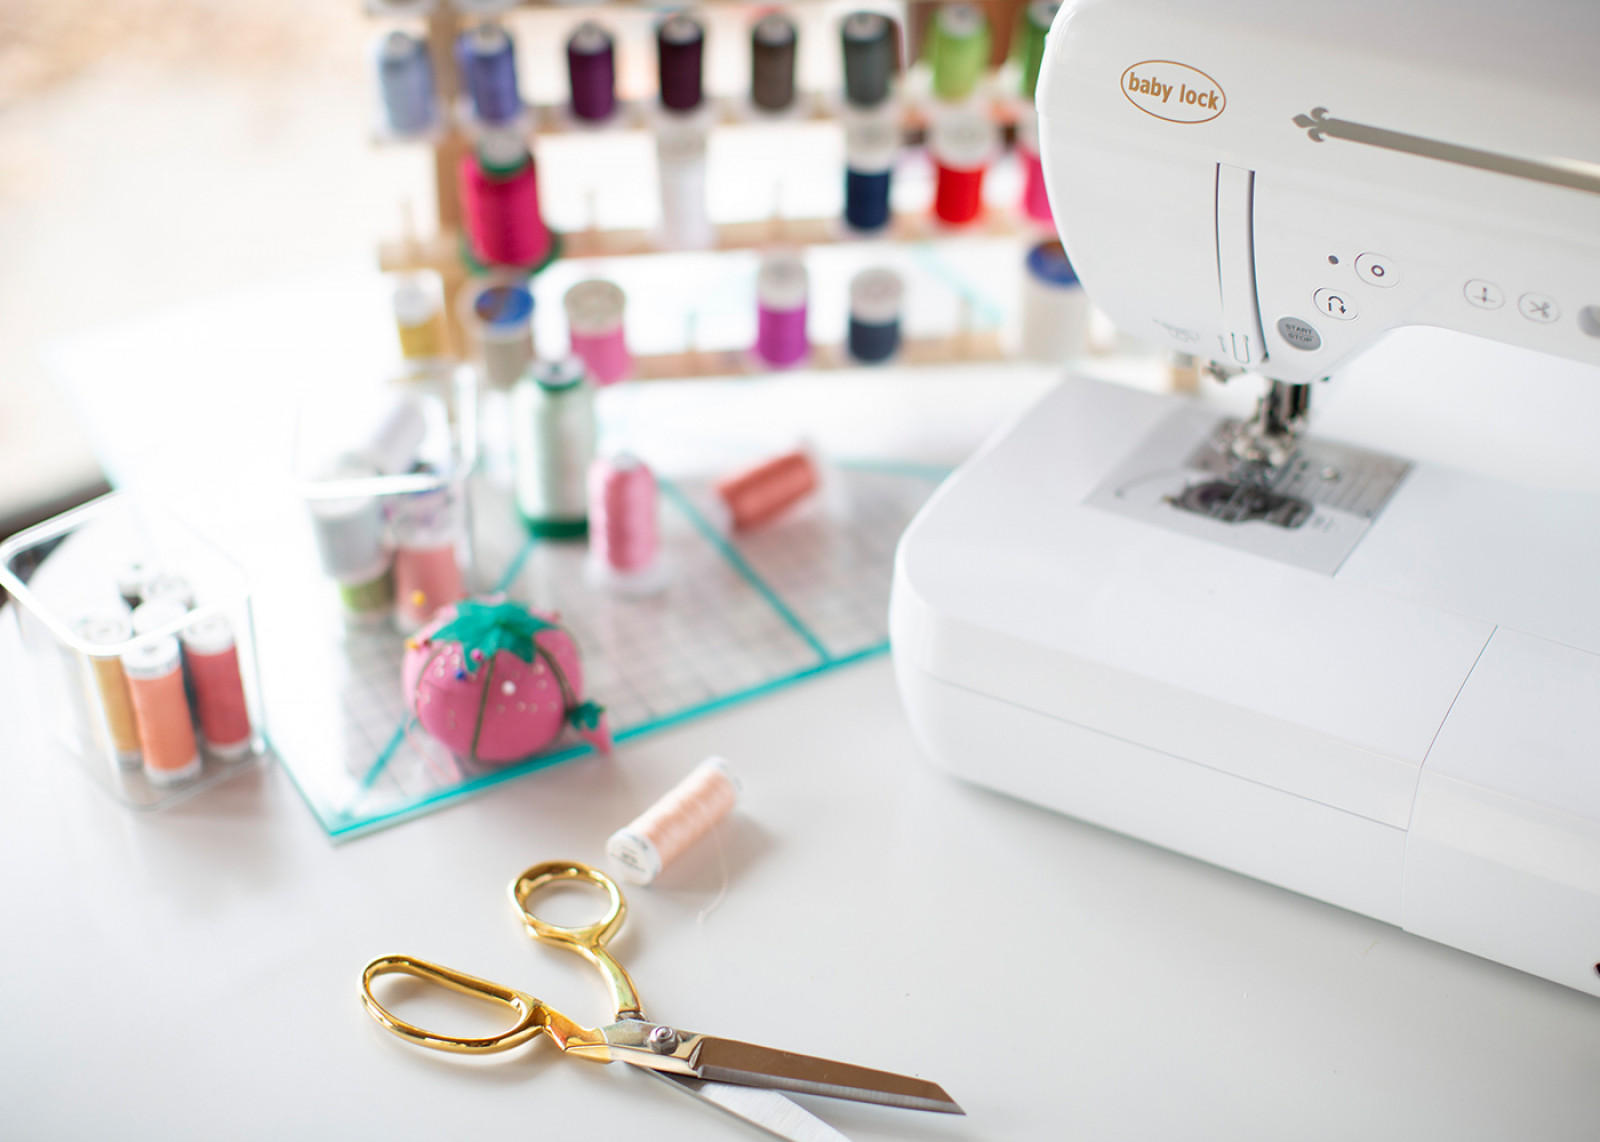 General Sewing Image.jpg